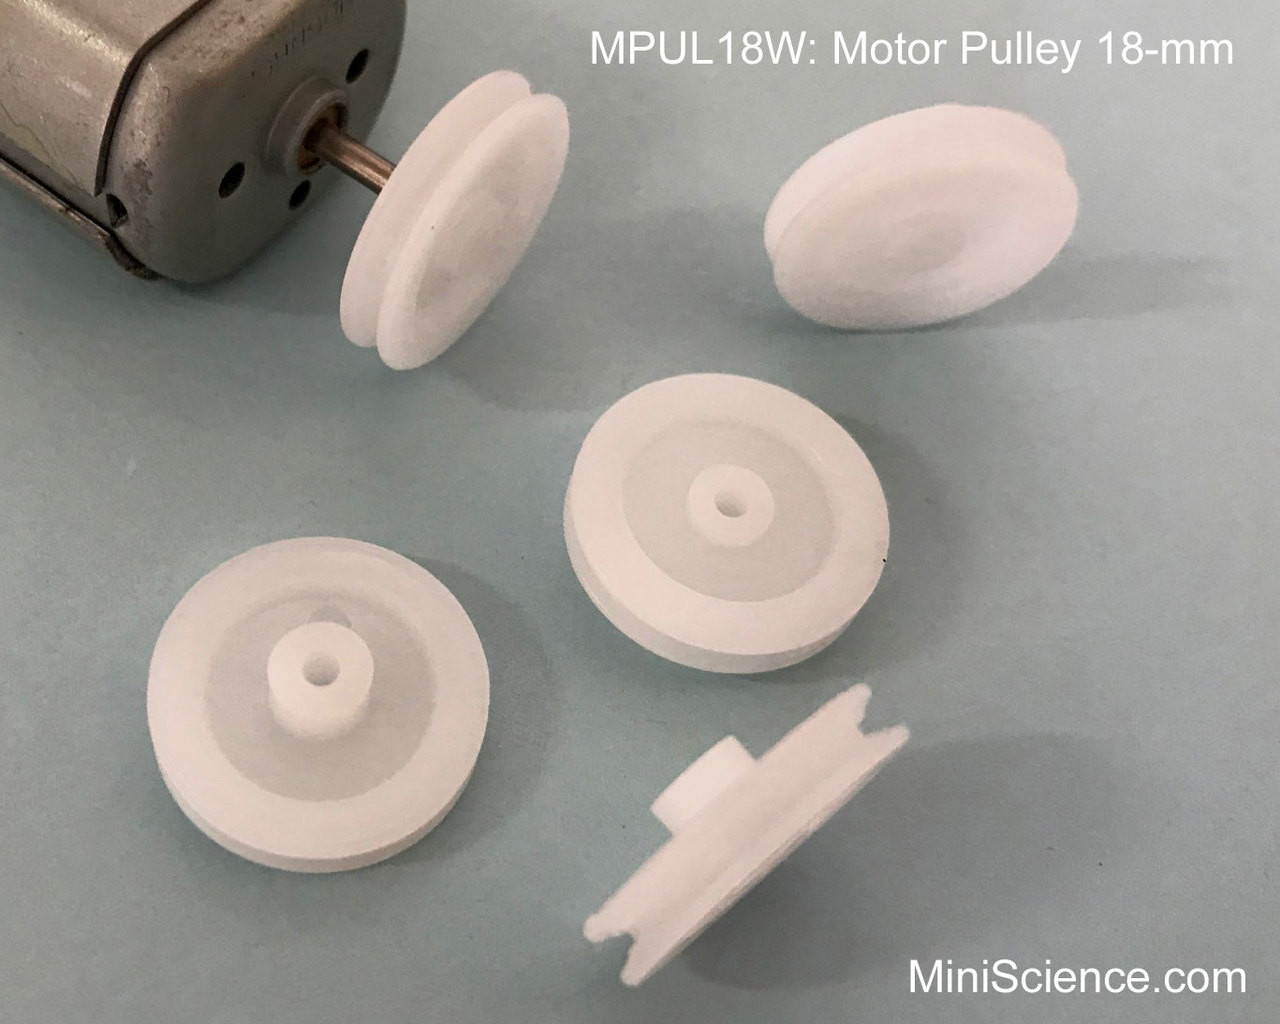 Motor Pulley 18-mm White for small motors with 2-mm shaft